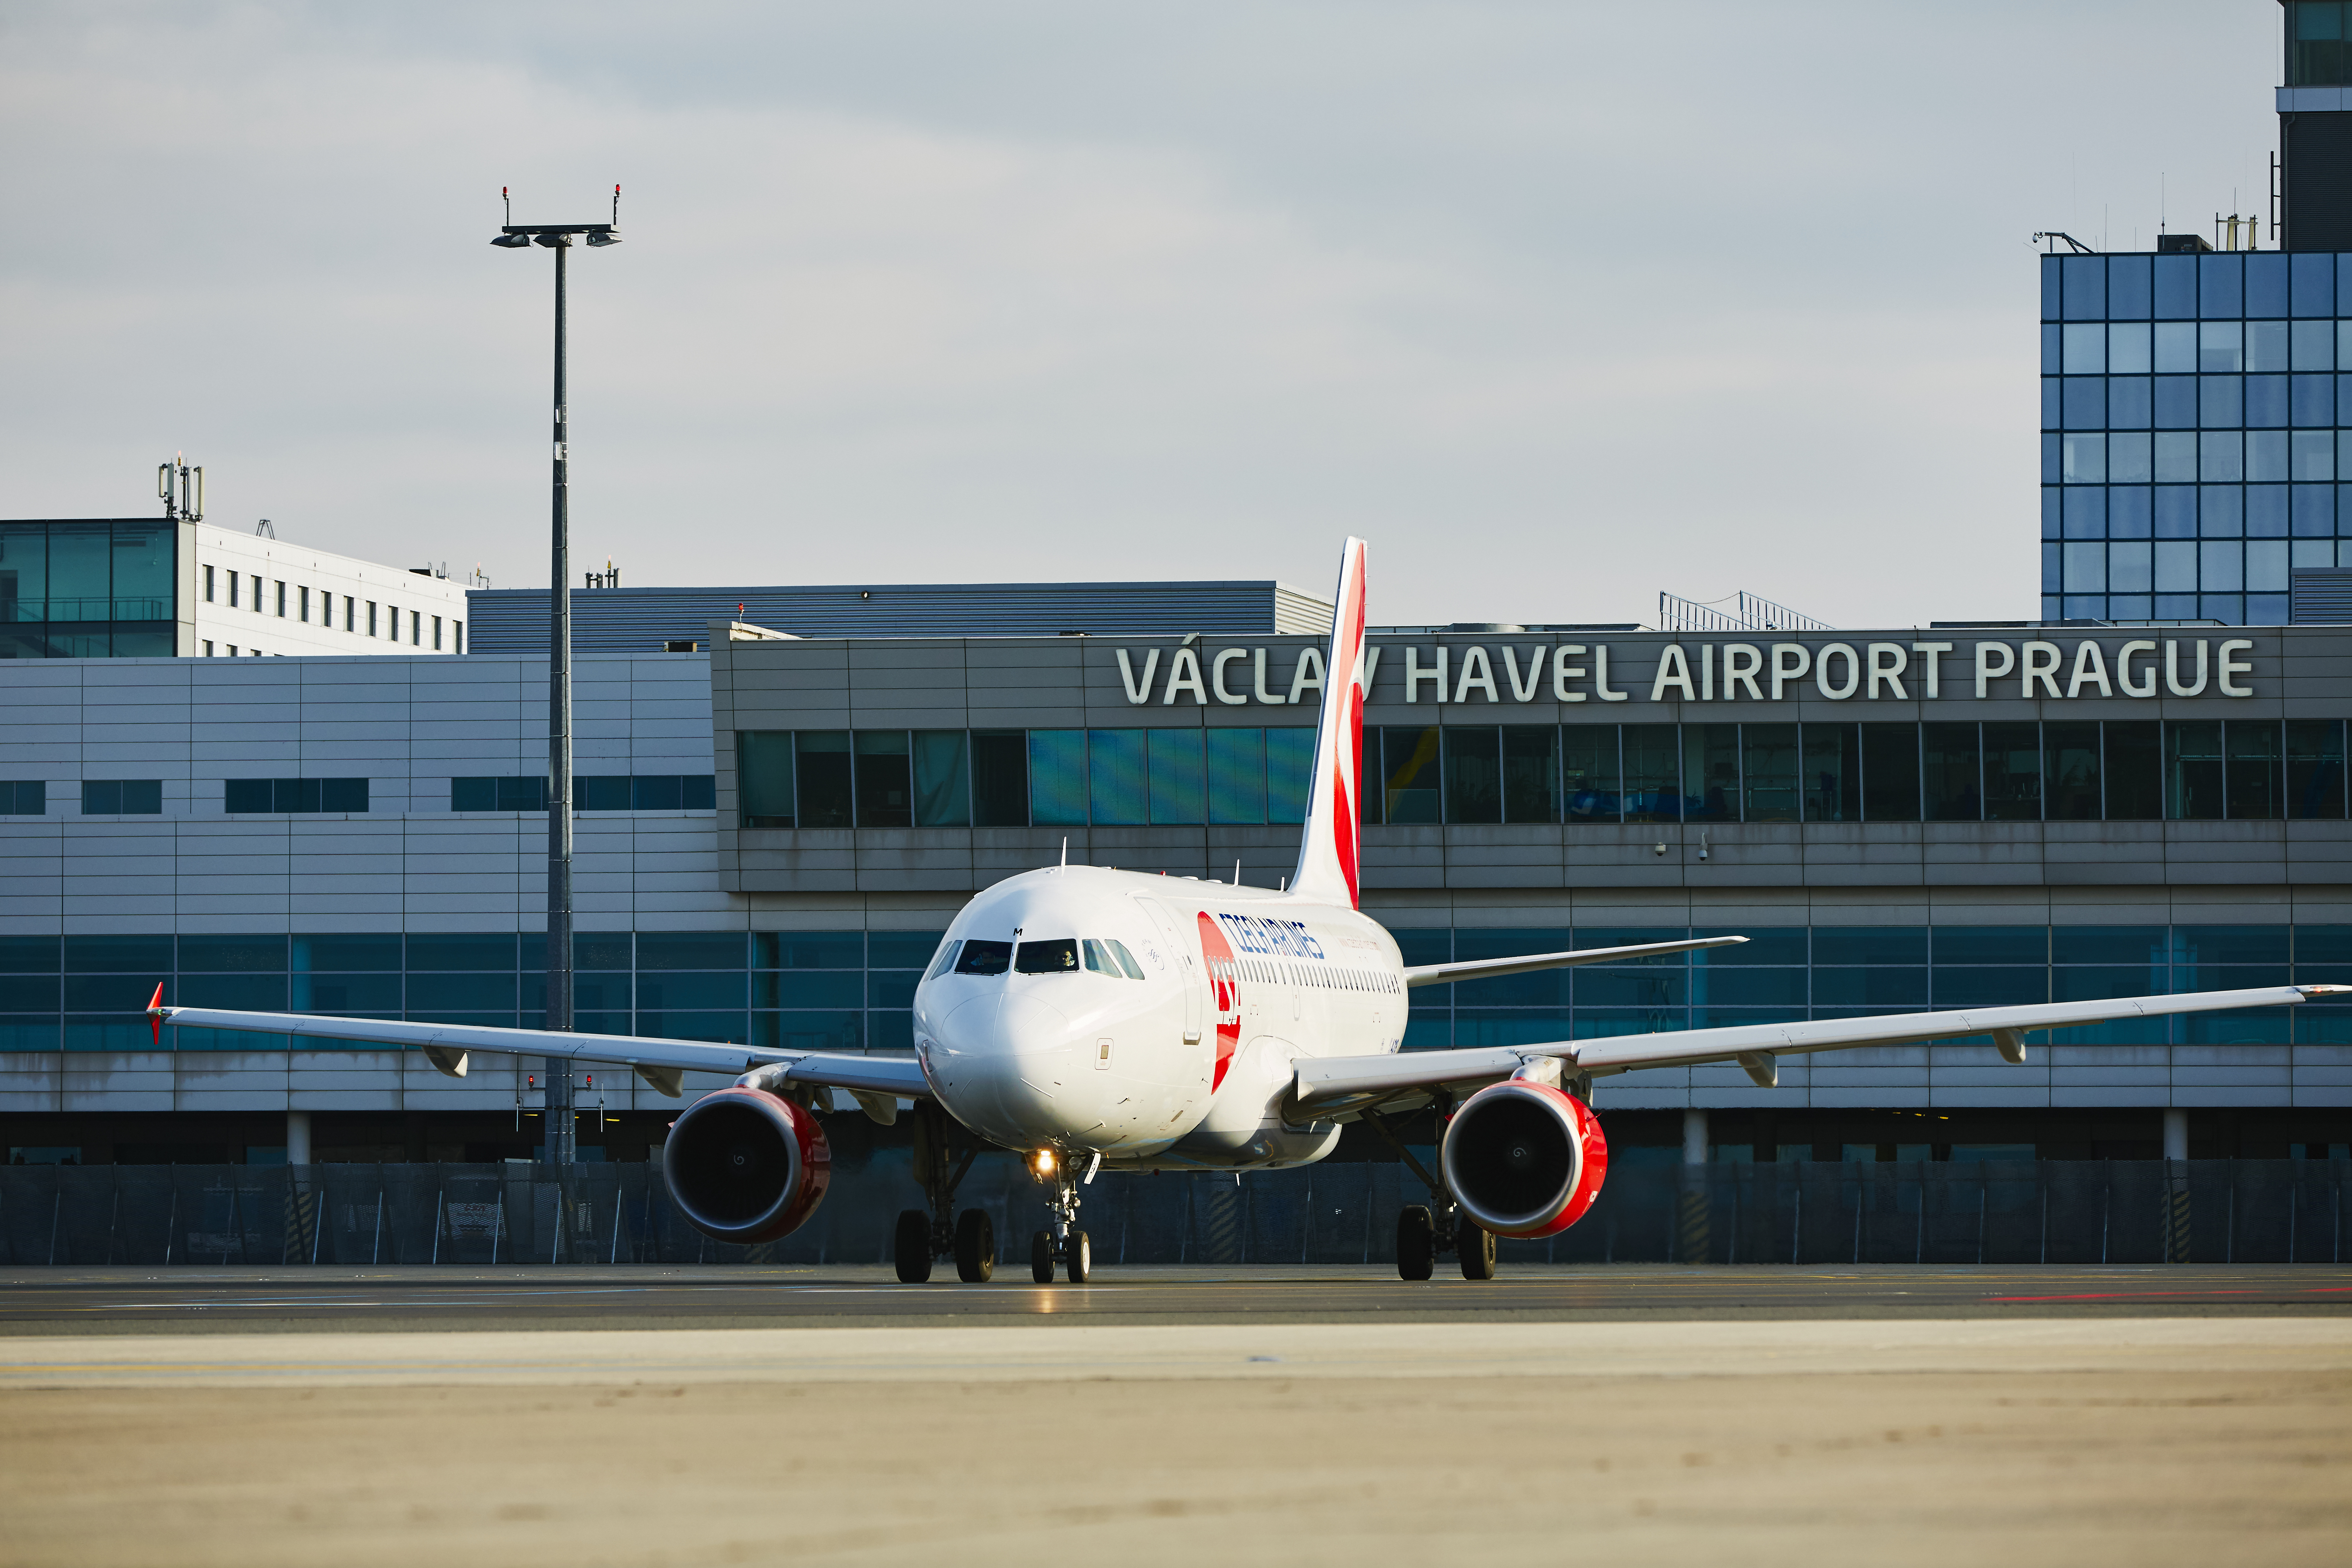 Airbus A319 of Czech Airlines at Vaclav Havel Prague Airport in the Czech Republic in December 21, 2014.